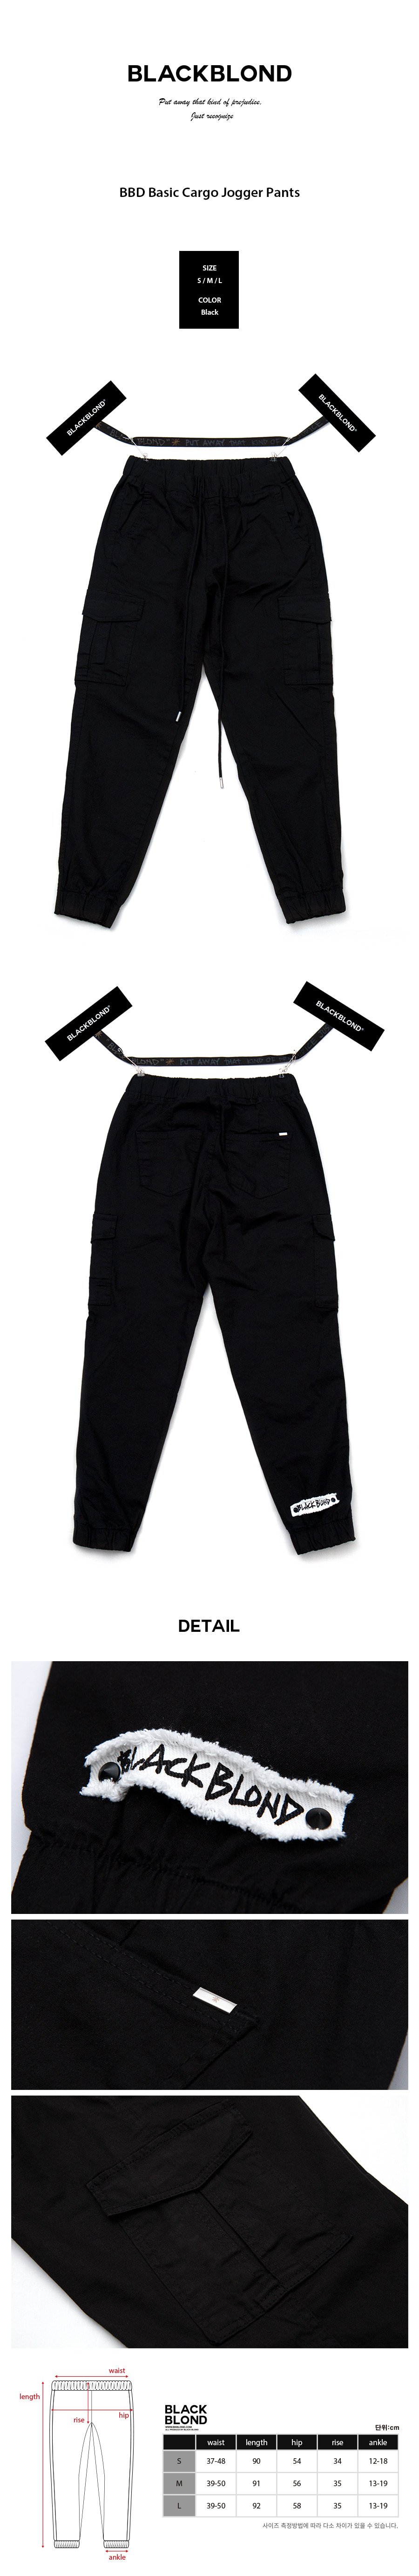 블랙블론드 BLACKBLOND - BBD Basic Cargo Jogger Pants (Black)